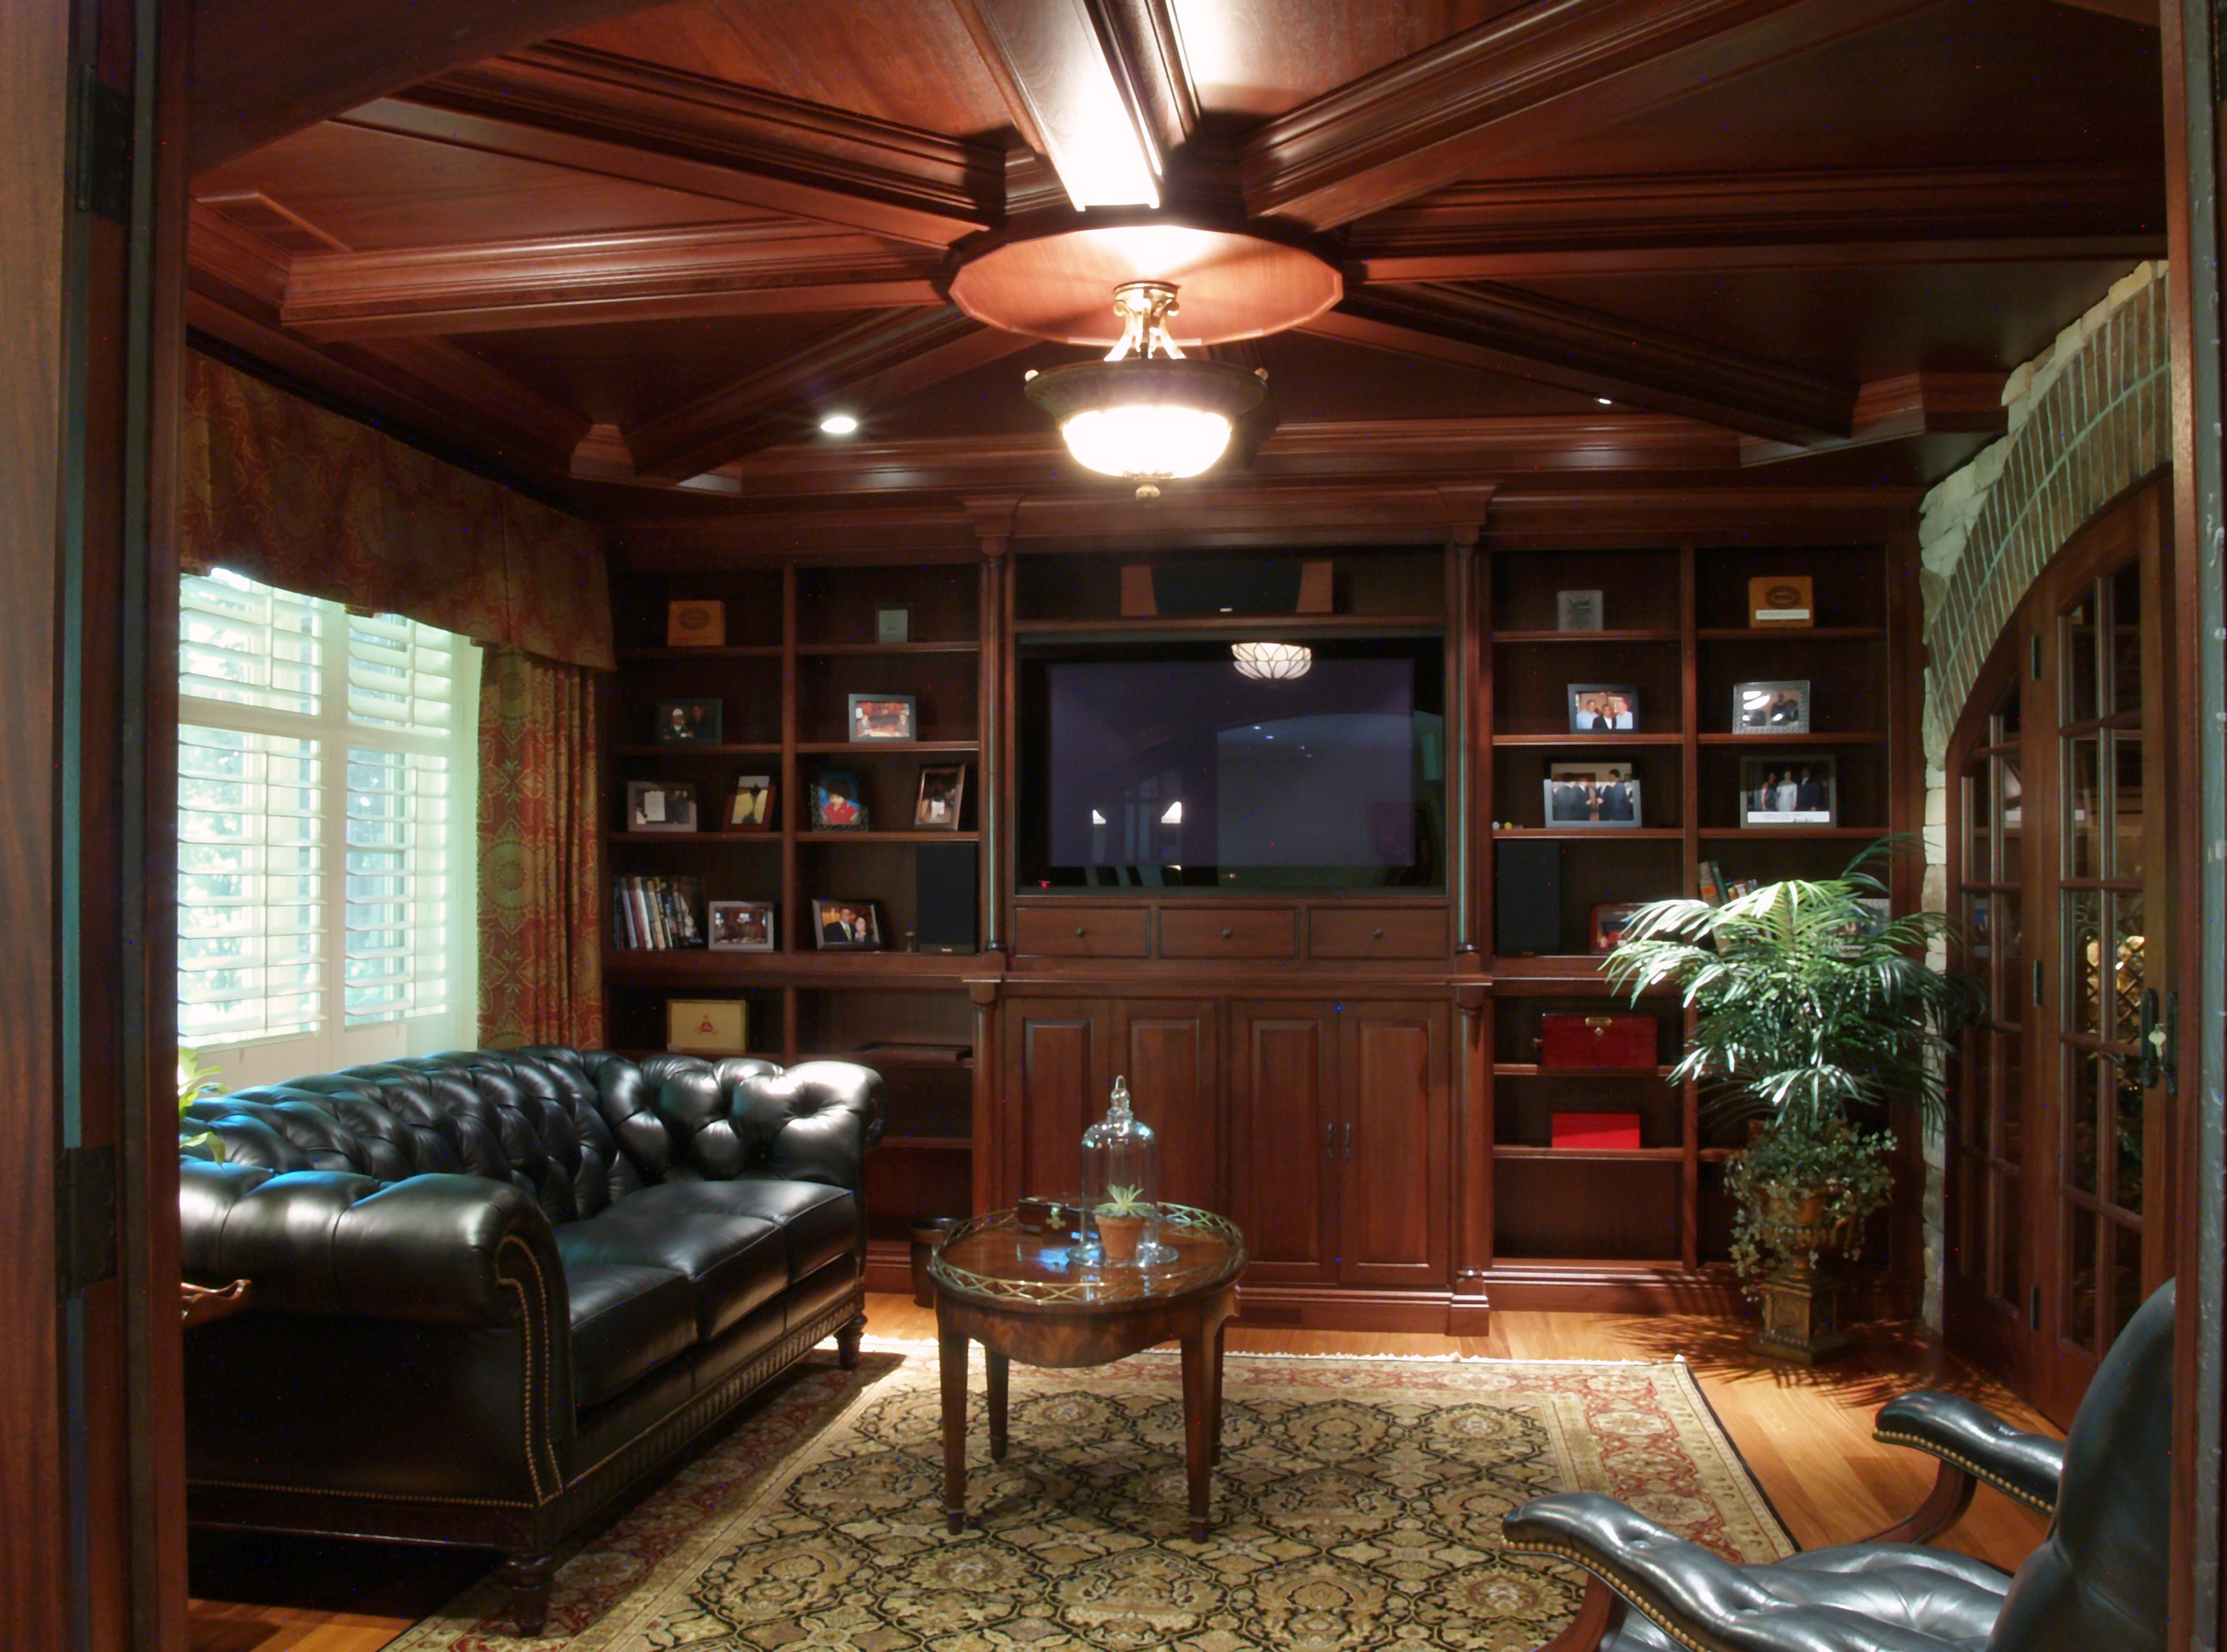 Gardner/Fox Wins Top Awards for Best Finished Basement | Basements ...